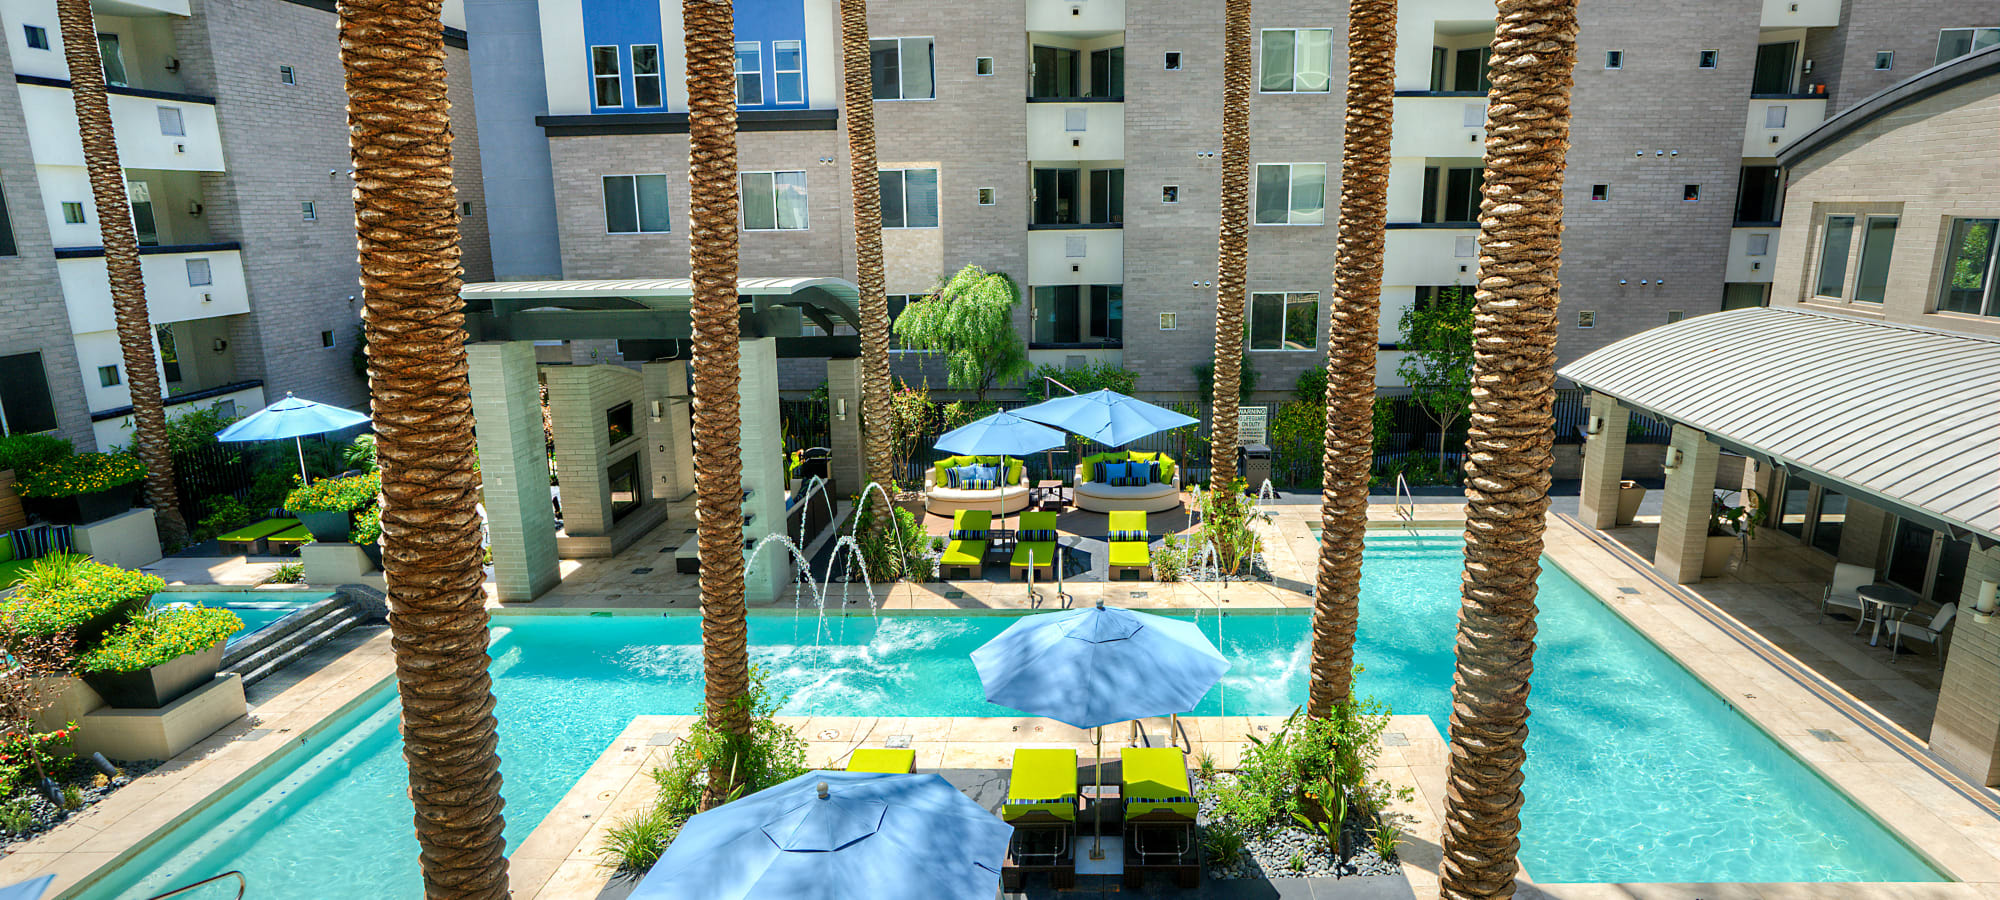 View of the swimming pool area from one of the upper-floor balconies at Level at Sixteenth in Phoenix, Arizona